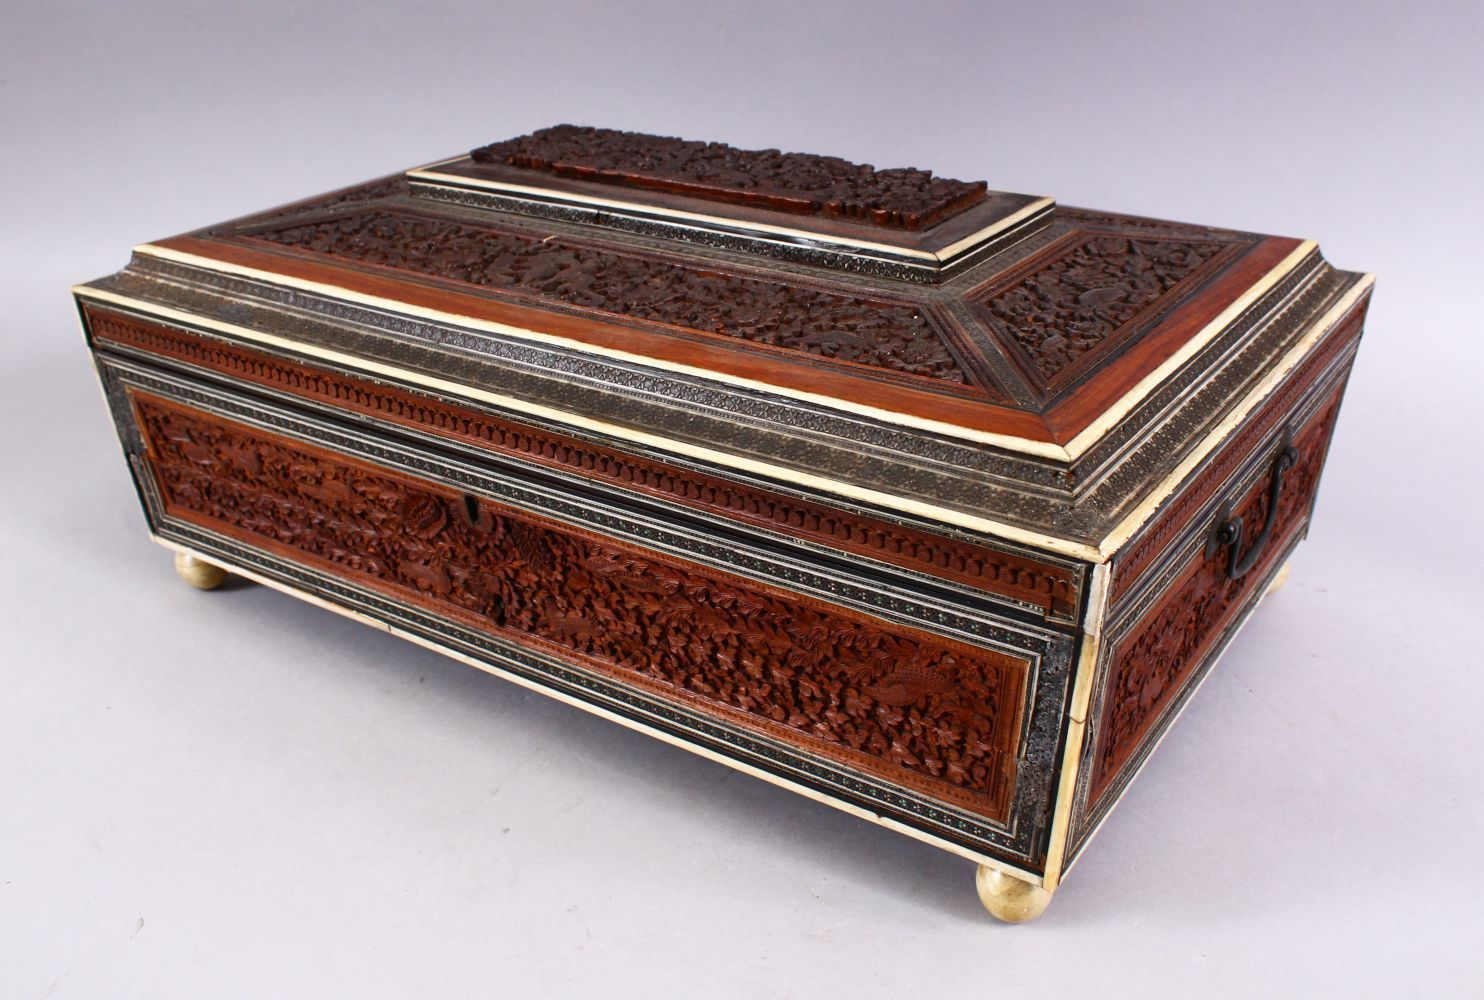 A 19TH CENTURY ANGLO INDIAN INLAID LIDDED SEWING BOX, with carved wood depicting figures and animals